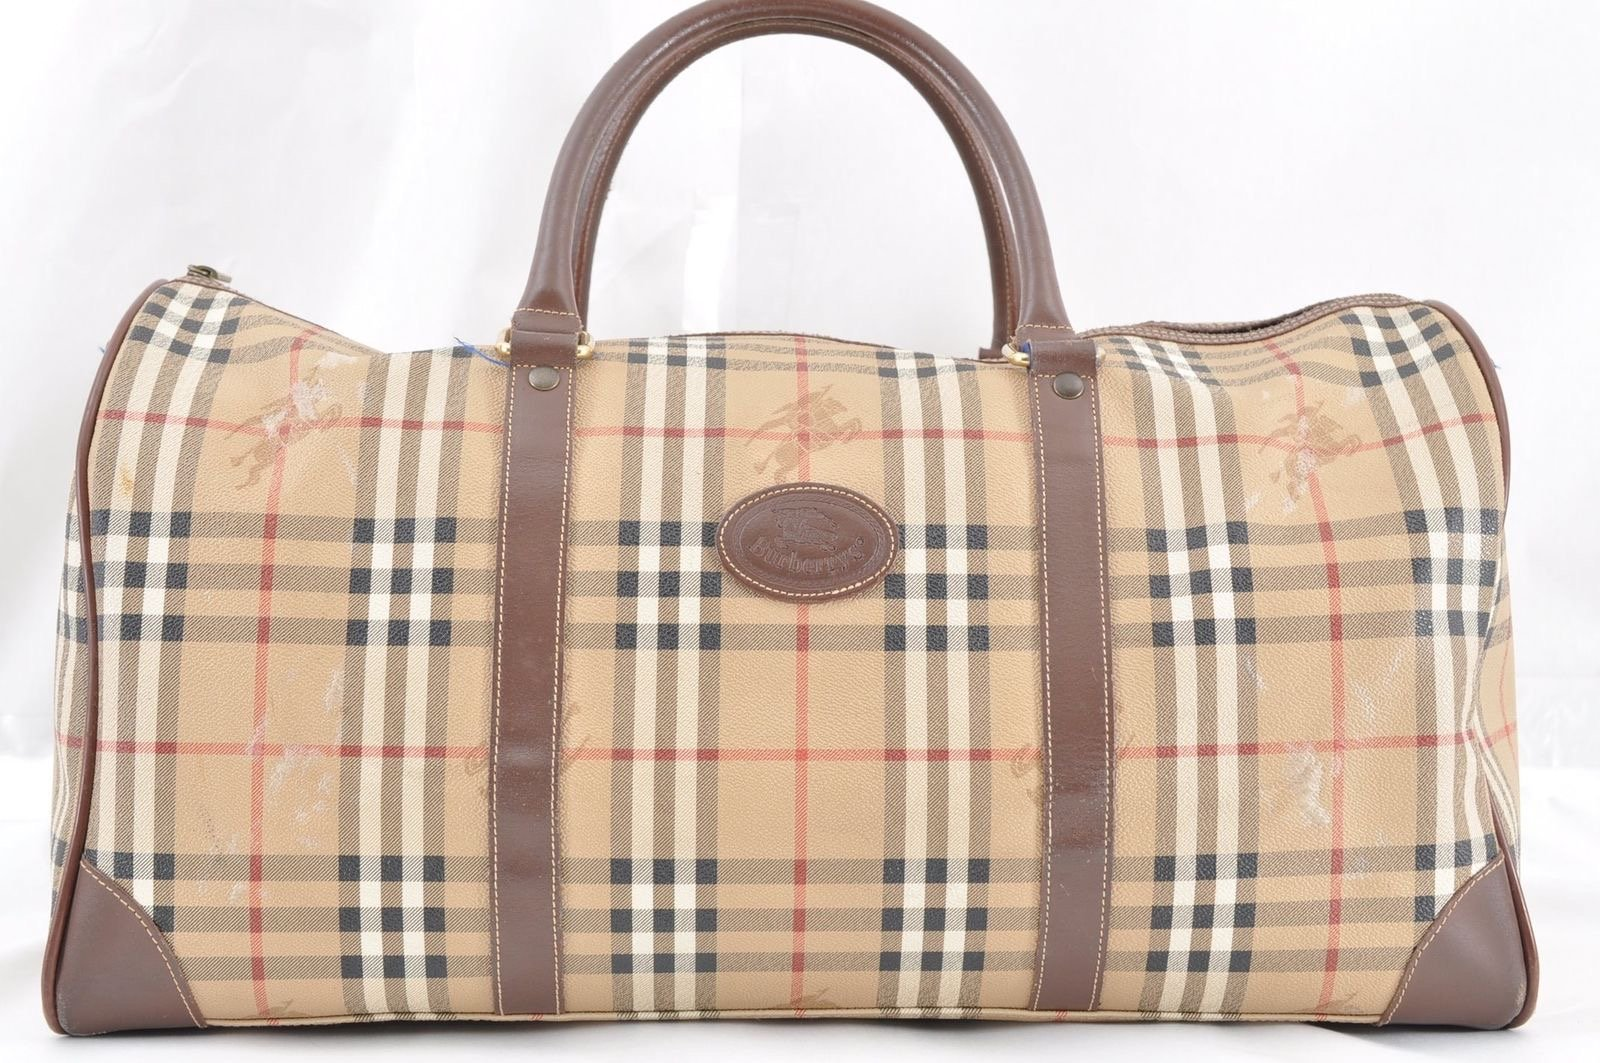 burberry duffle